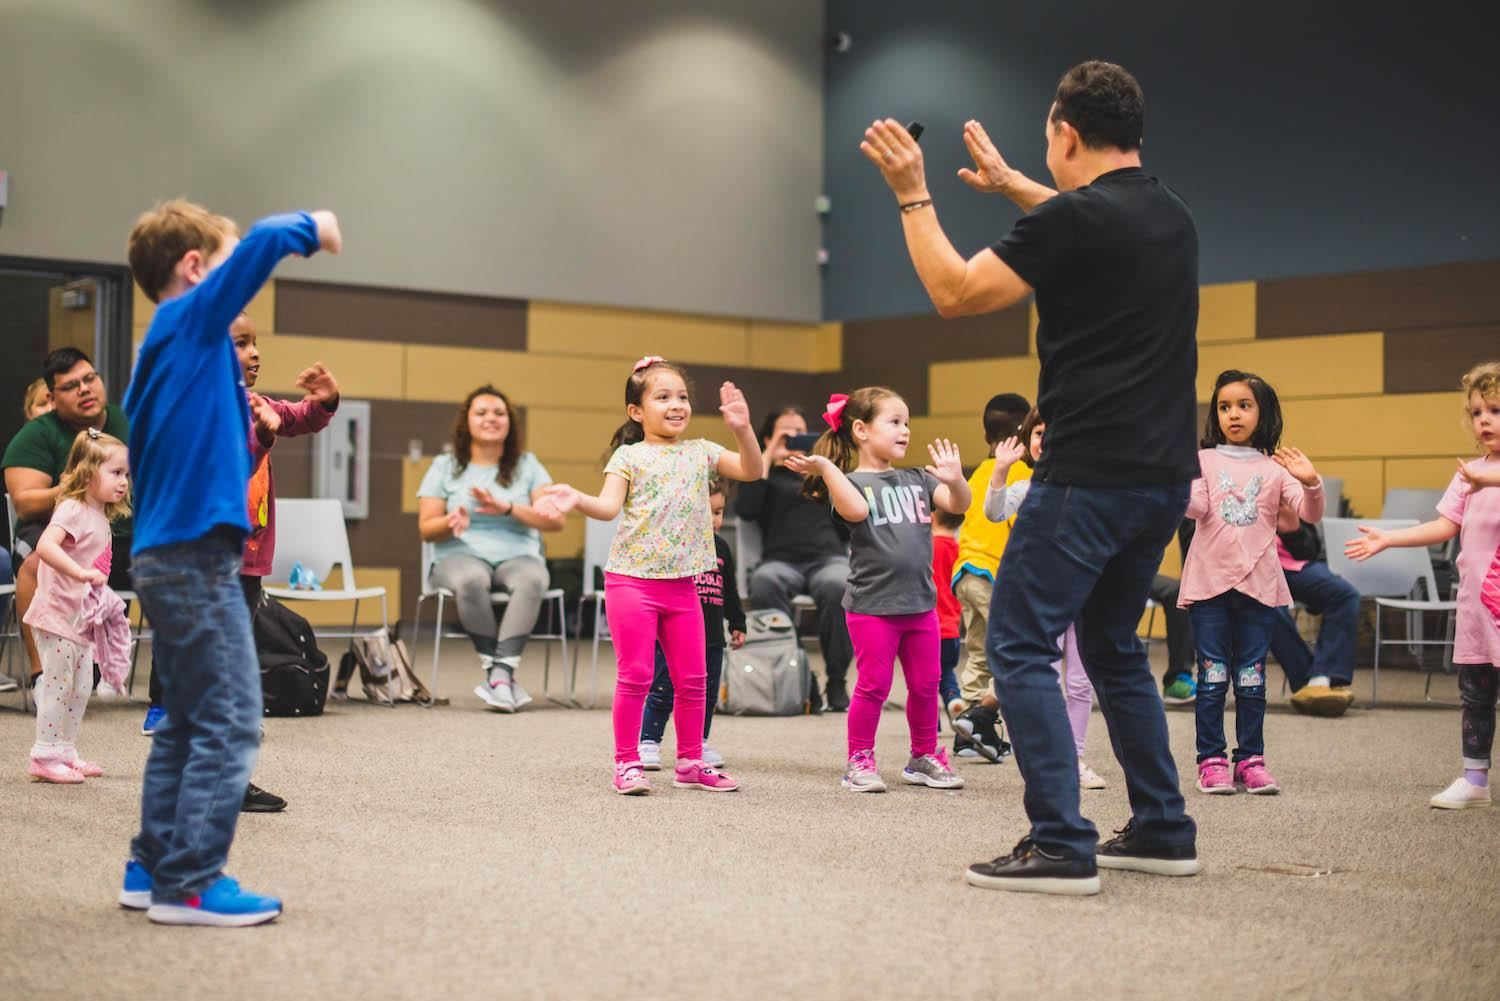 students dance along with instructor